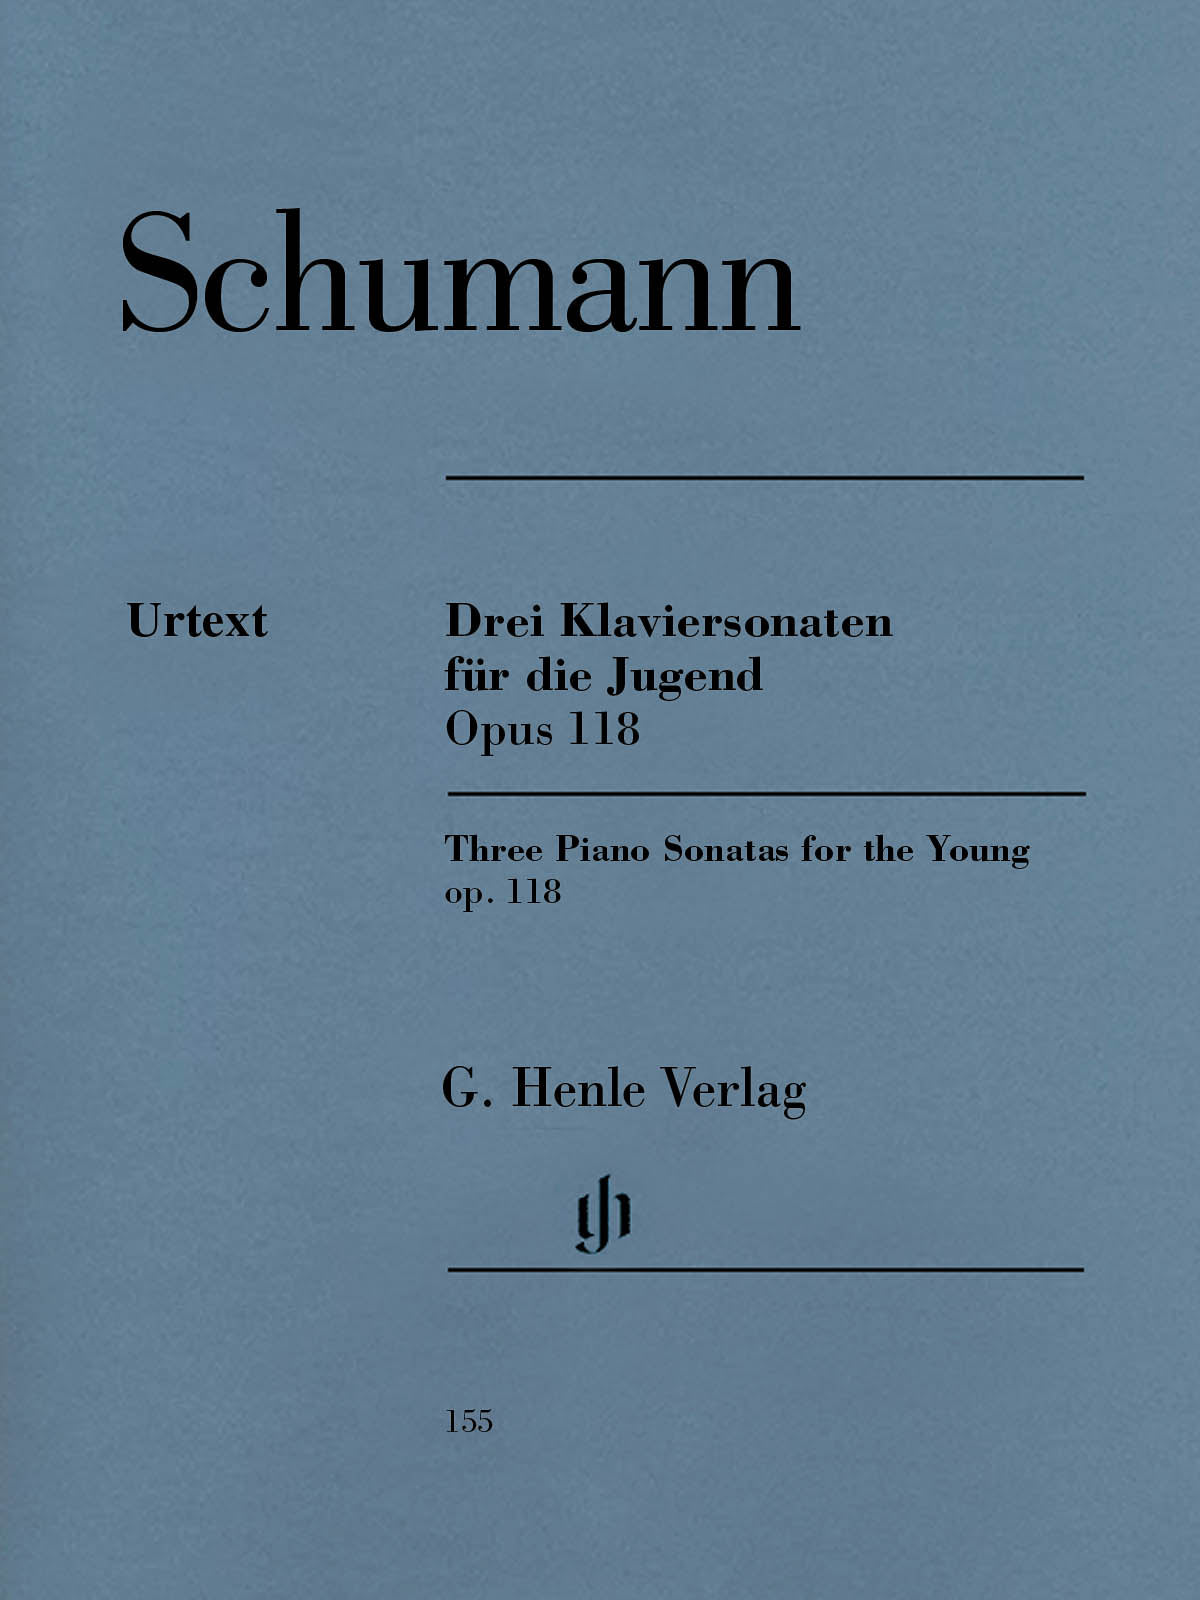 Schumann: 3 Piano Sonatas for the Young, Op. 118